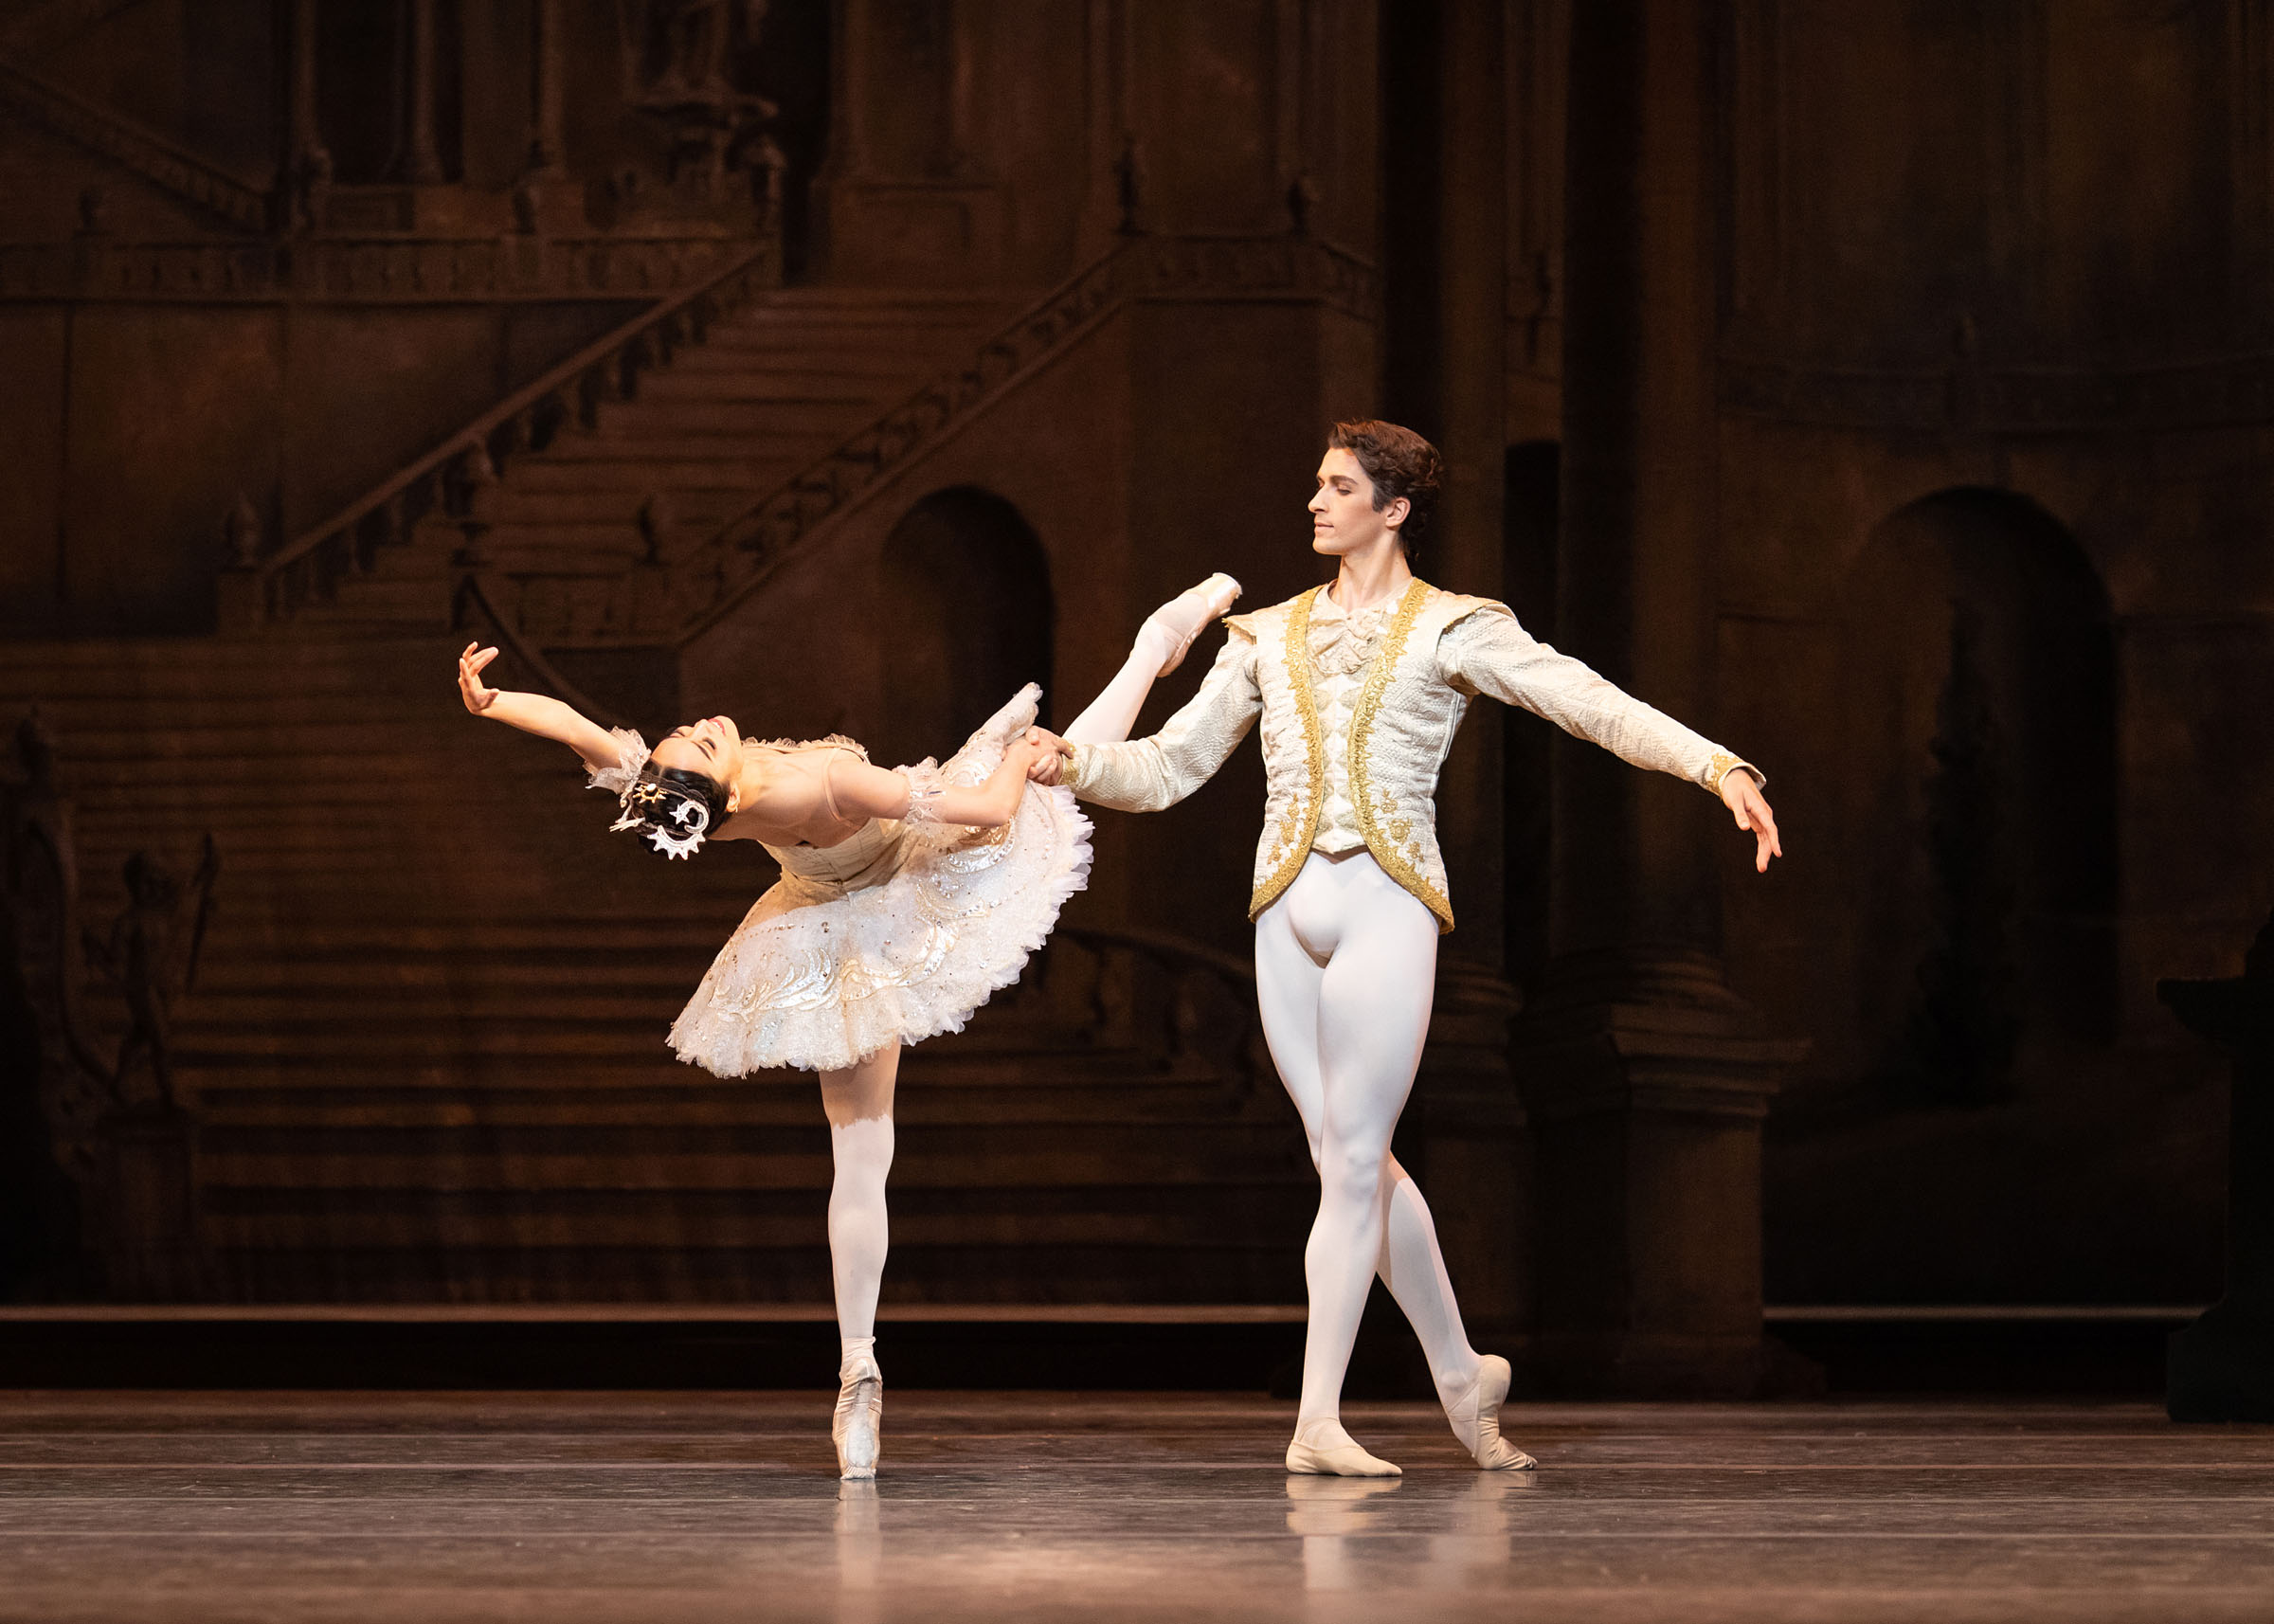 Fumi Kaneko as Princess Aurora and Reece Clarke as Prince Florimund in The Sleeping Beauty